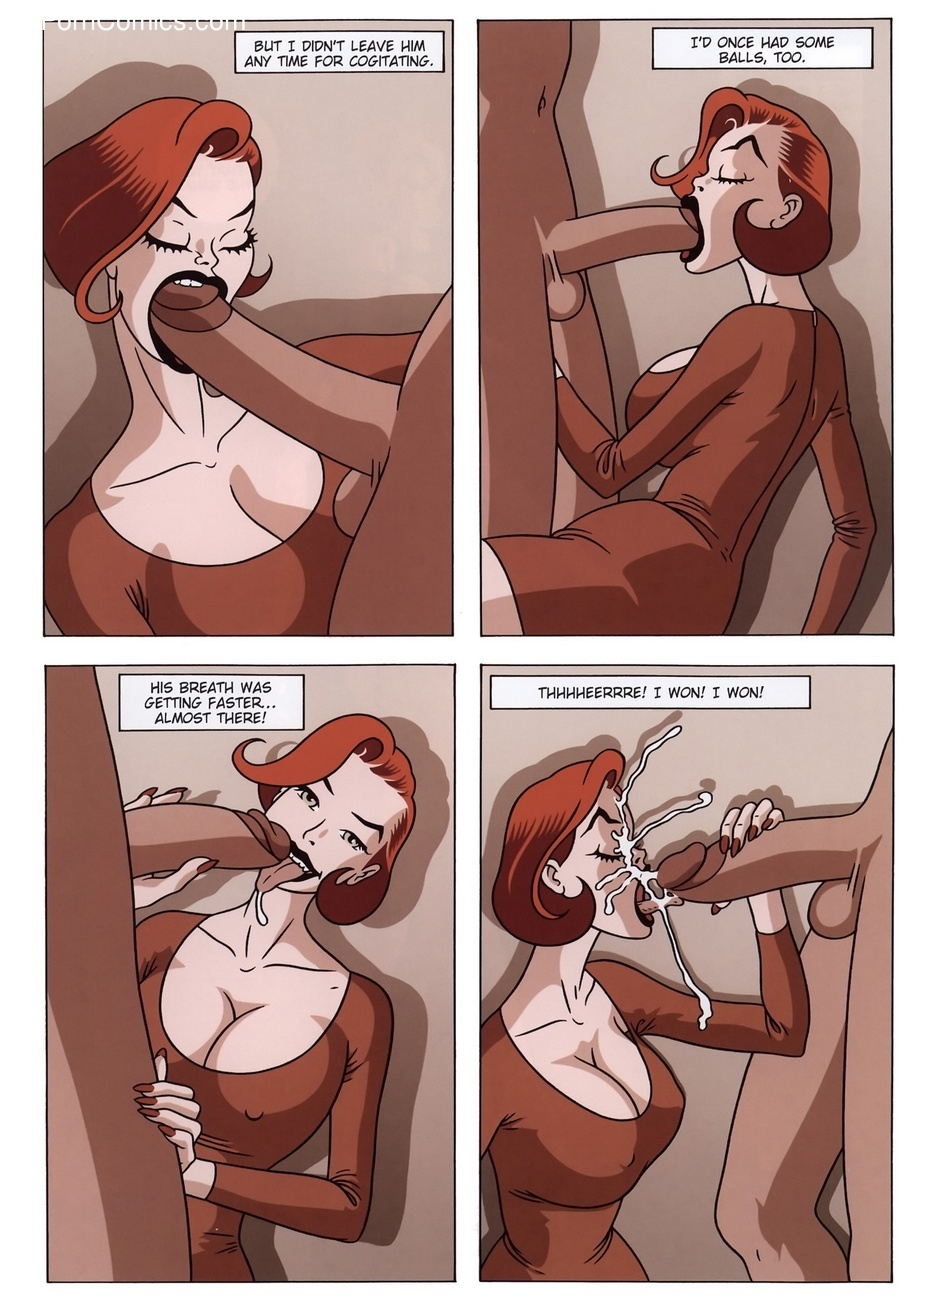 The 110 Blowjobs 34 free sex comic